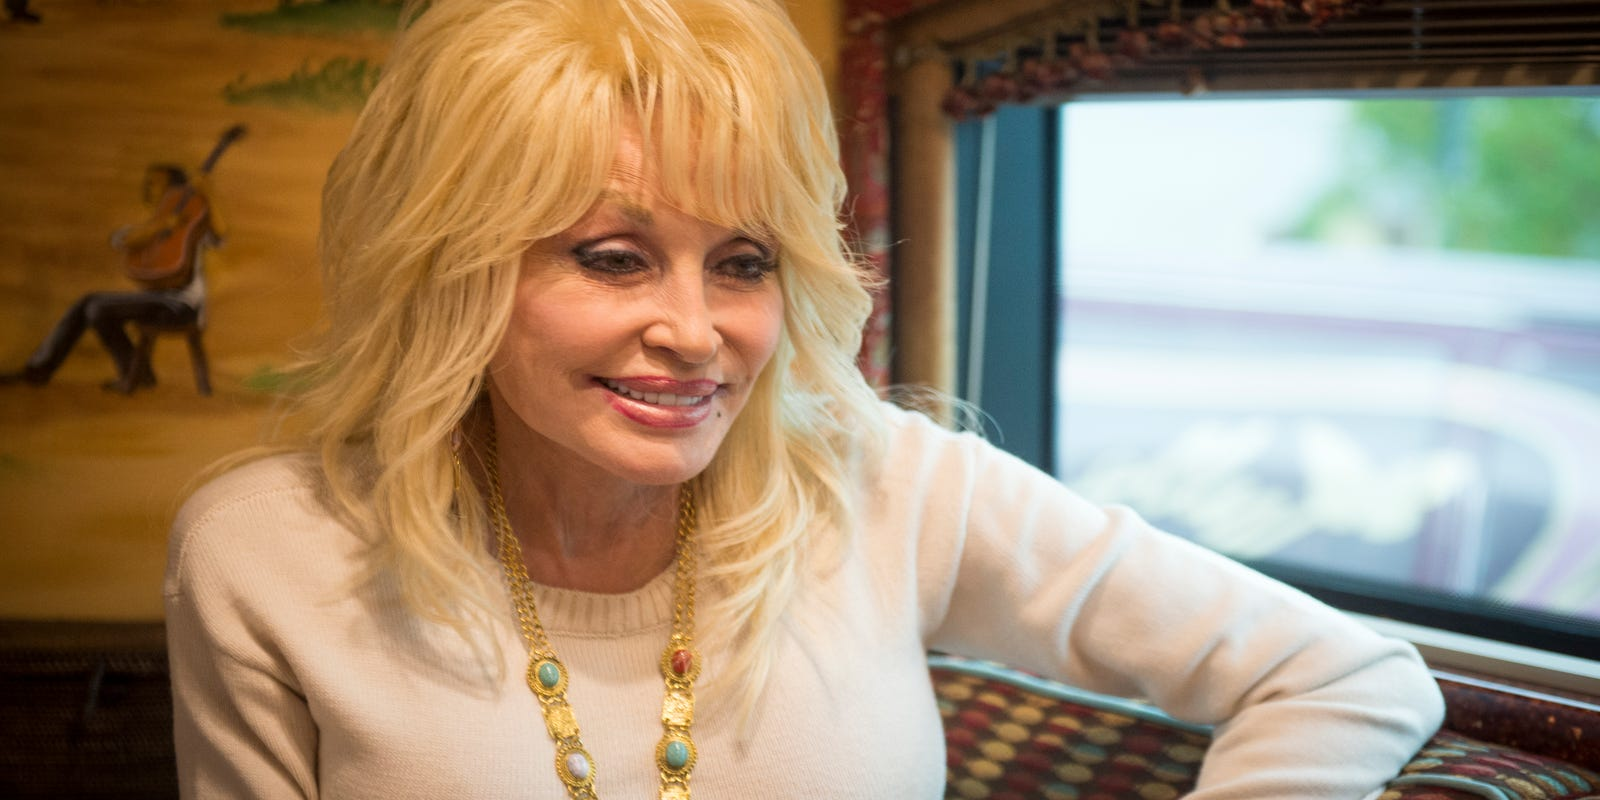 Gatlinburg Wildfires Dolly Parton So Proud Of My People Fund 1987 Chevy Celebrity Fuse Box Telethon